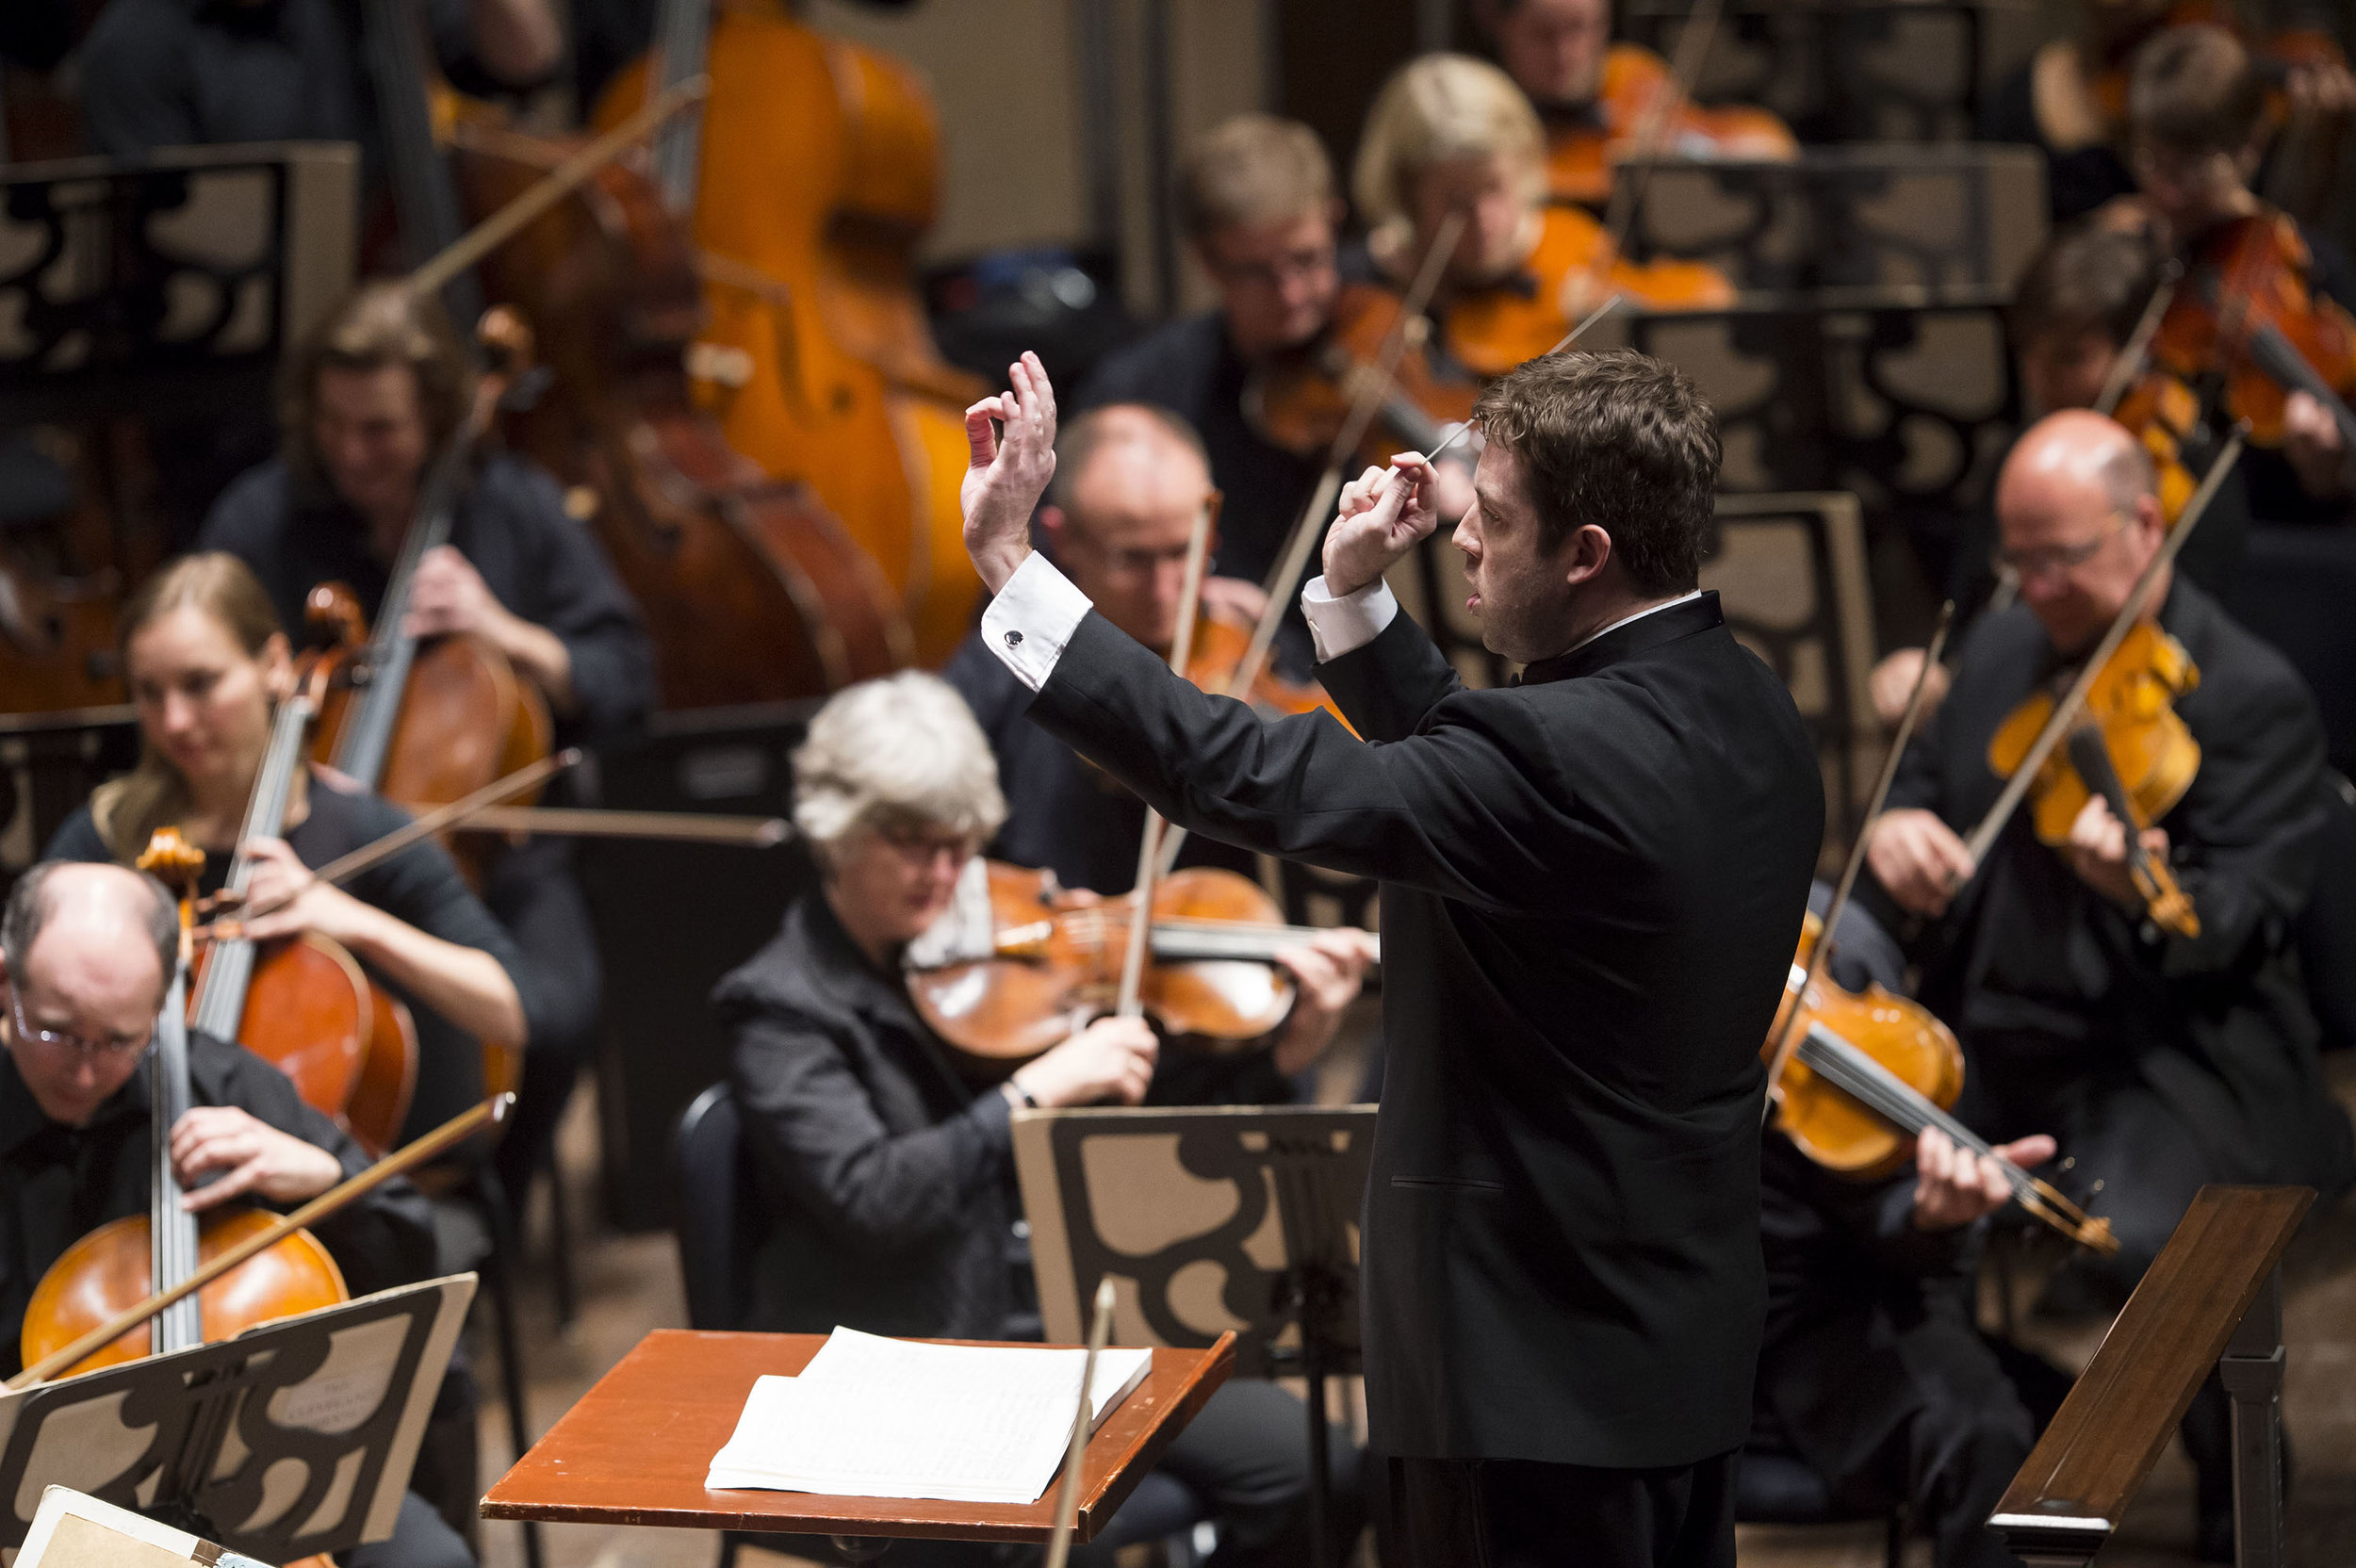 Brett Mitchell will lead The Cleveland Orchestra and Indiana University orchestras in Richard Strauss's  Death and Transfiguration next week in Bloomington. (Photo by Roger Mastroianni)